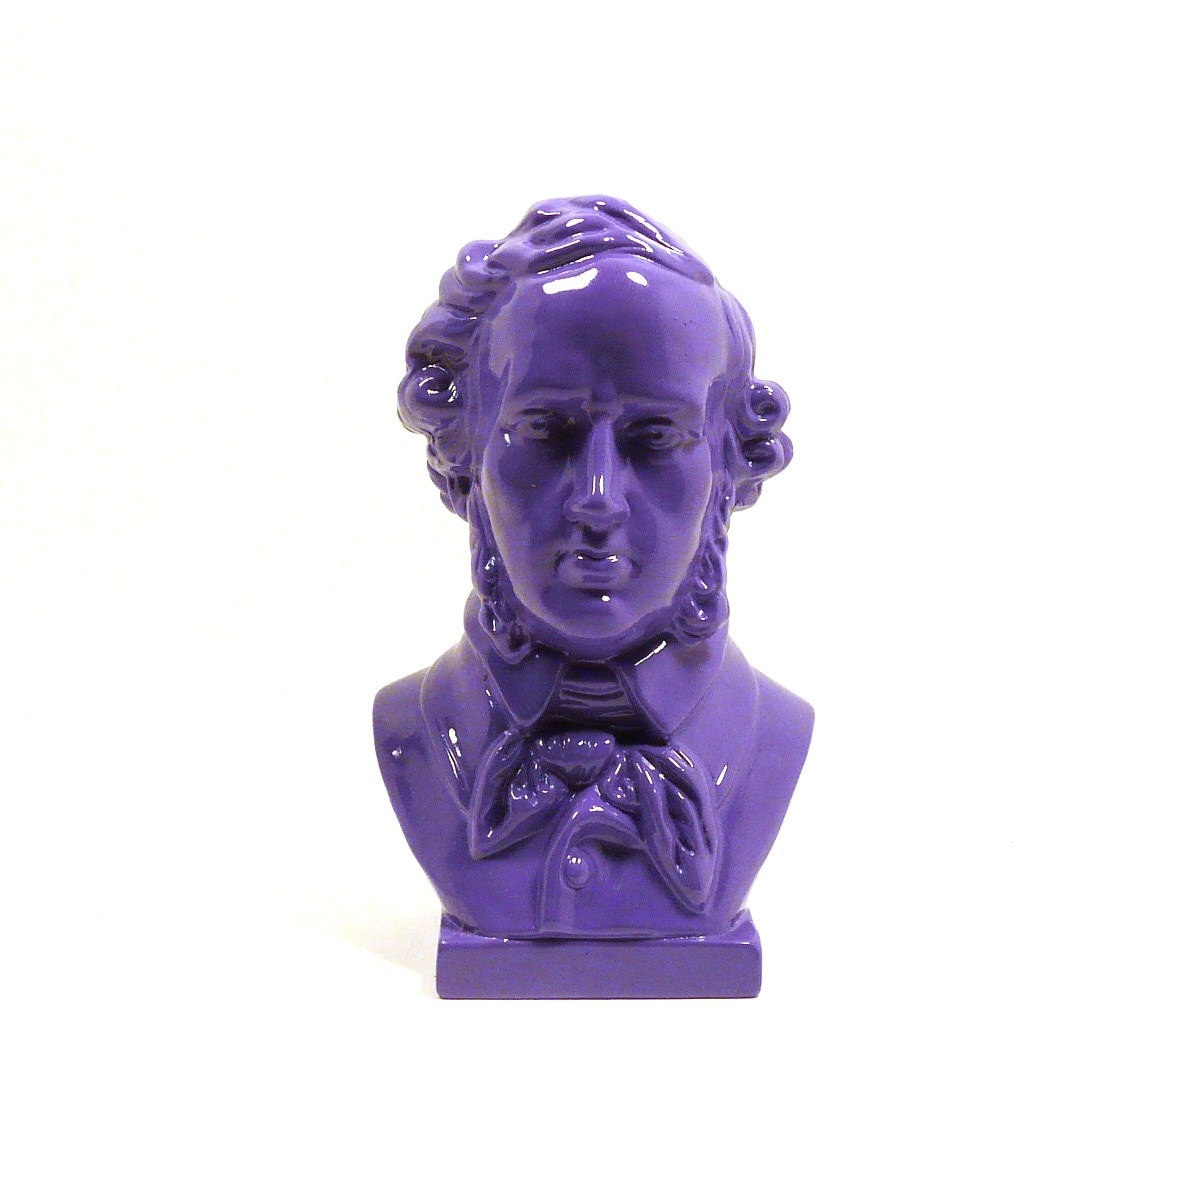 composer head bust, painted figurine, vintage, mendelssohn, purple, funky decor, dorm room, music, historical statue, upcycled figurine